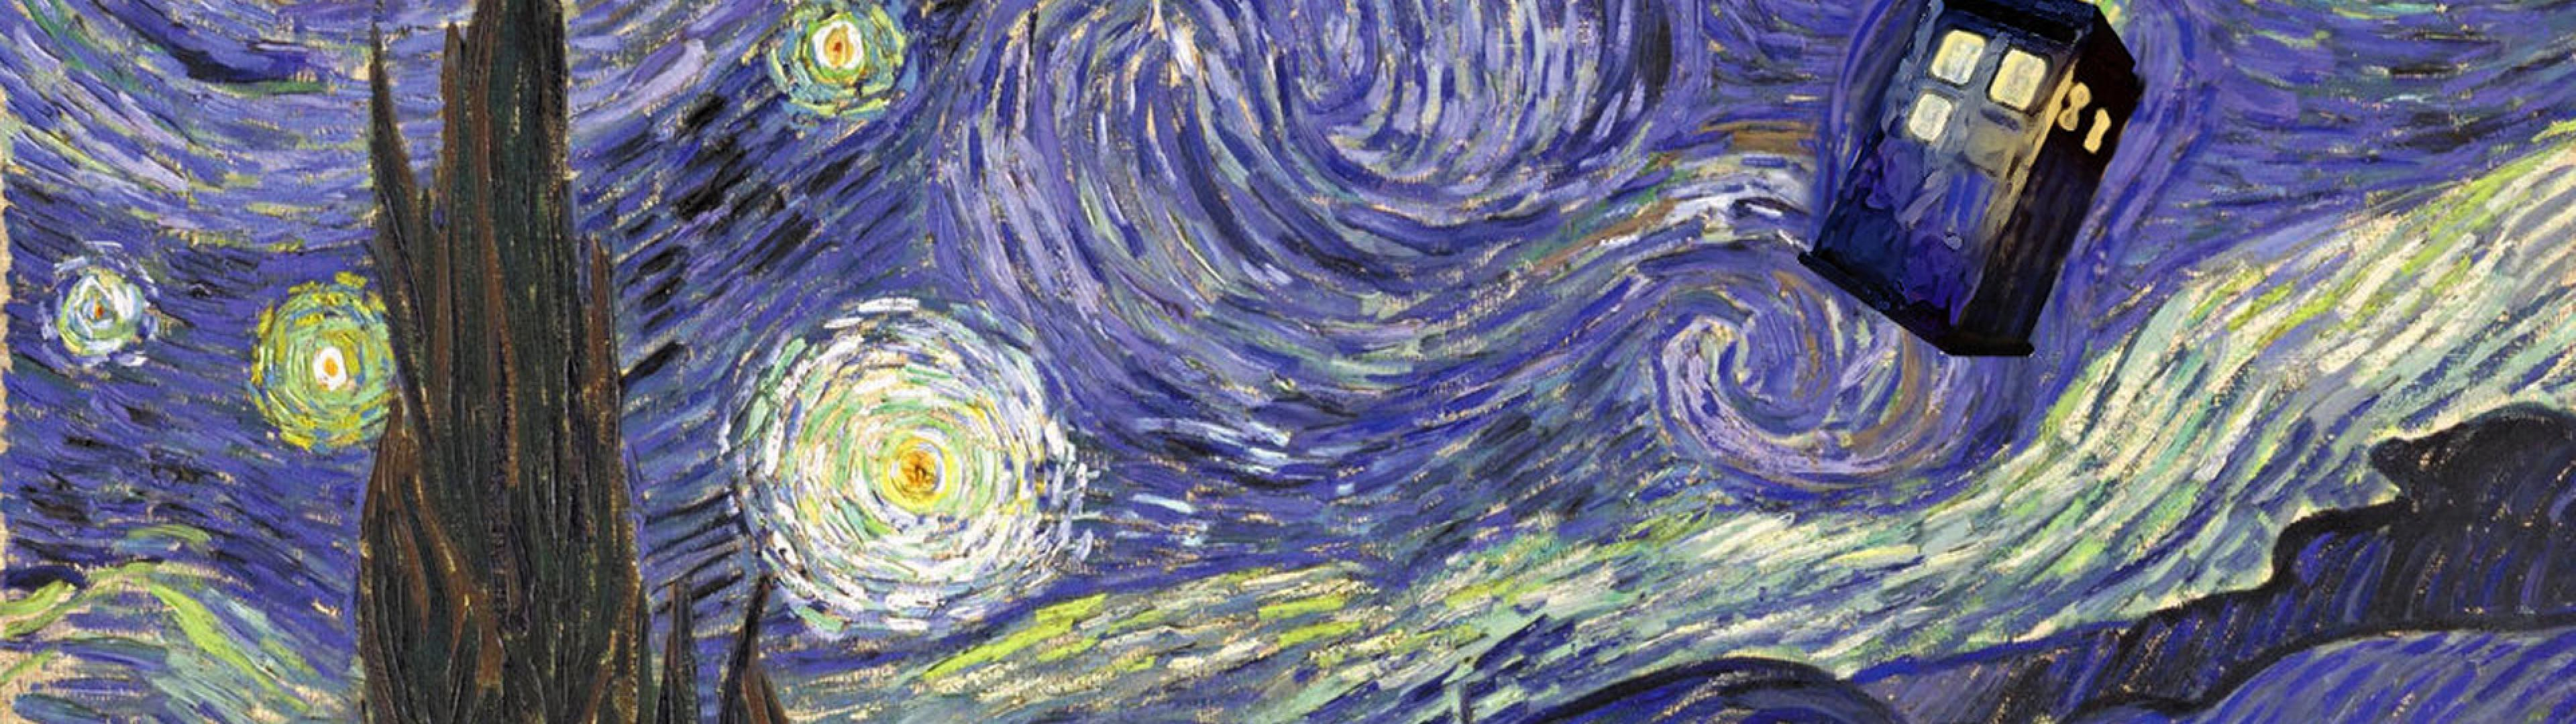 3840x1080 doctor who starry night tardis vincent van gogh Ultra or Dual High .